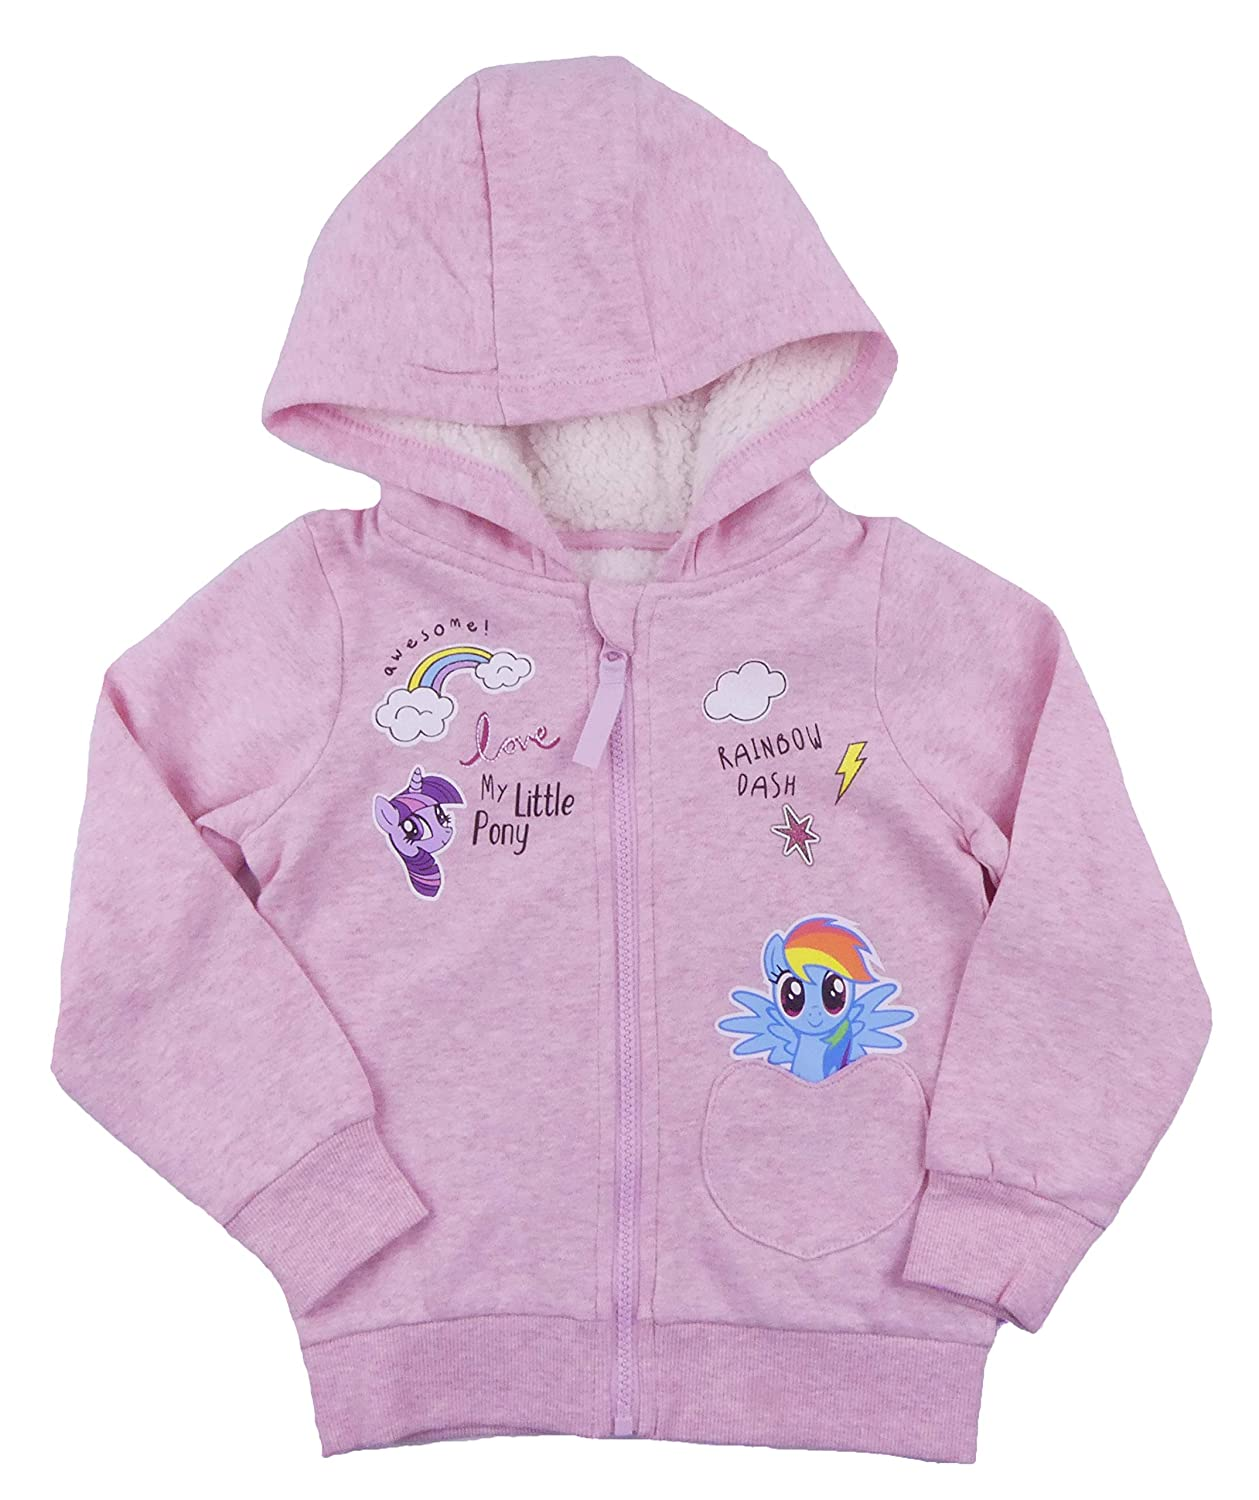 Girls My Little Pony Hooded Jacket 2-3 Years up to 6-7 Years